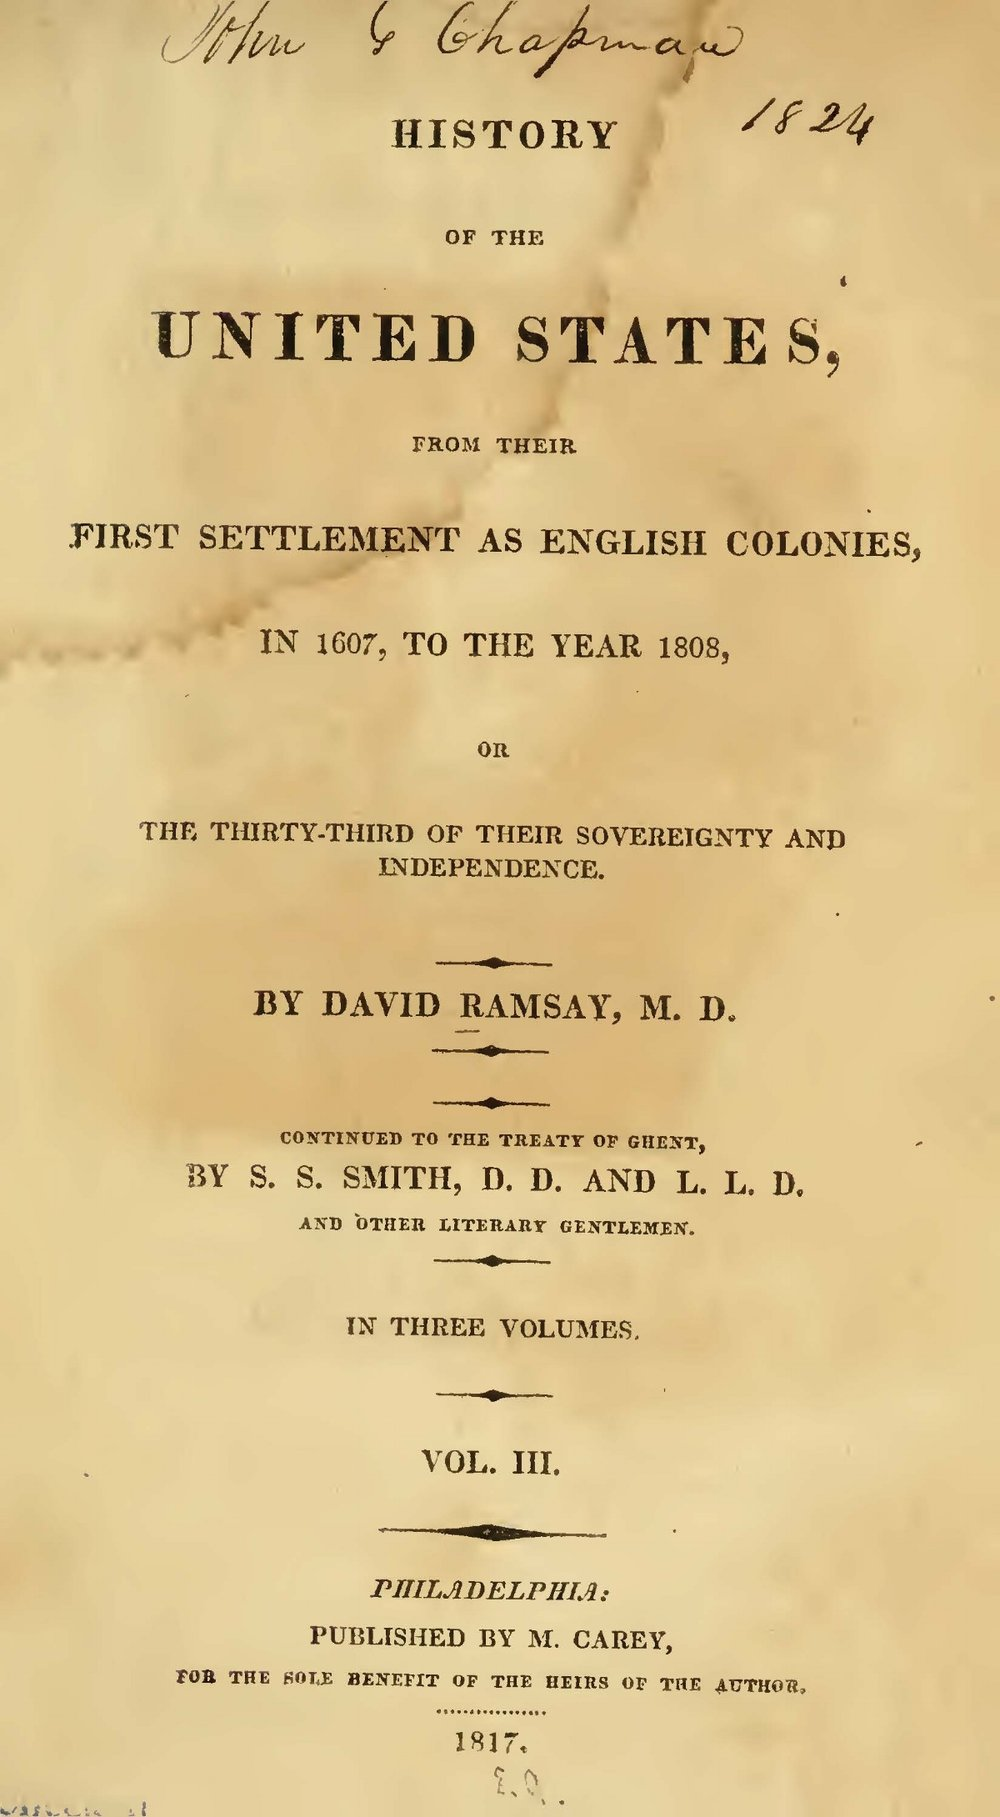 Ramsay, David, History of the United States, Vol. 3 Title Page.jpg